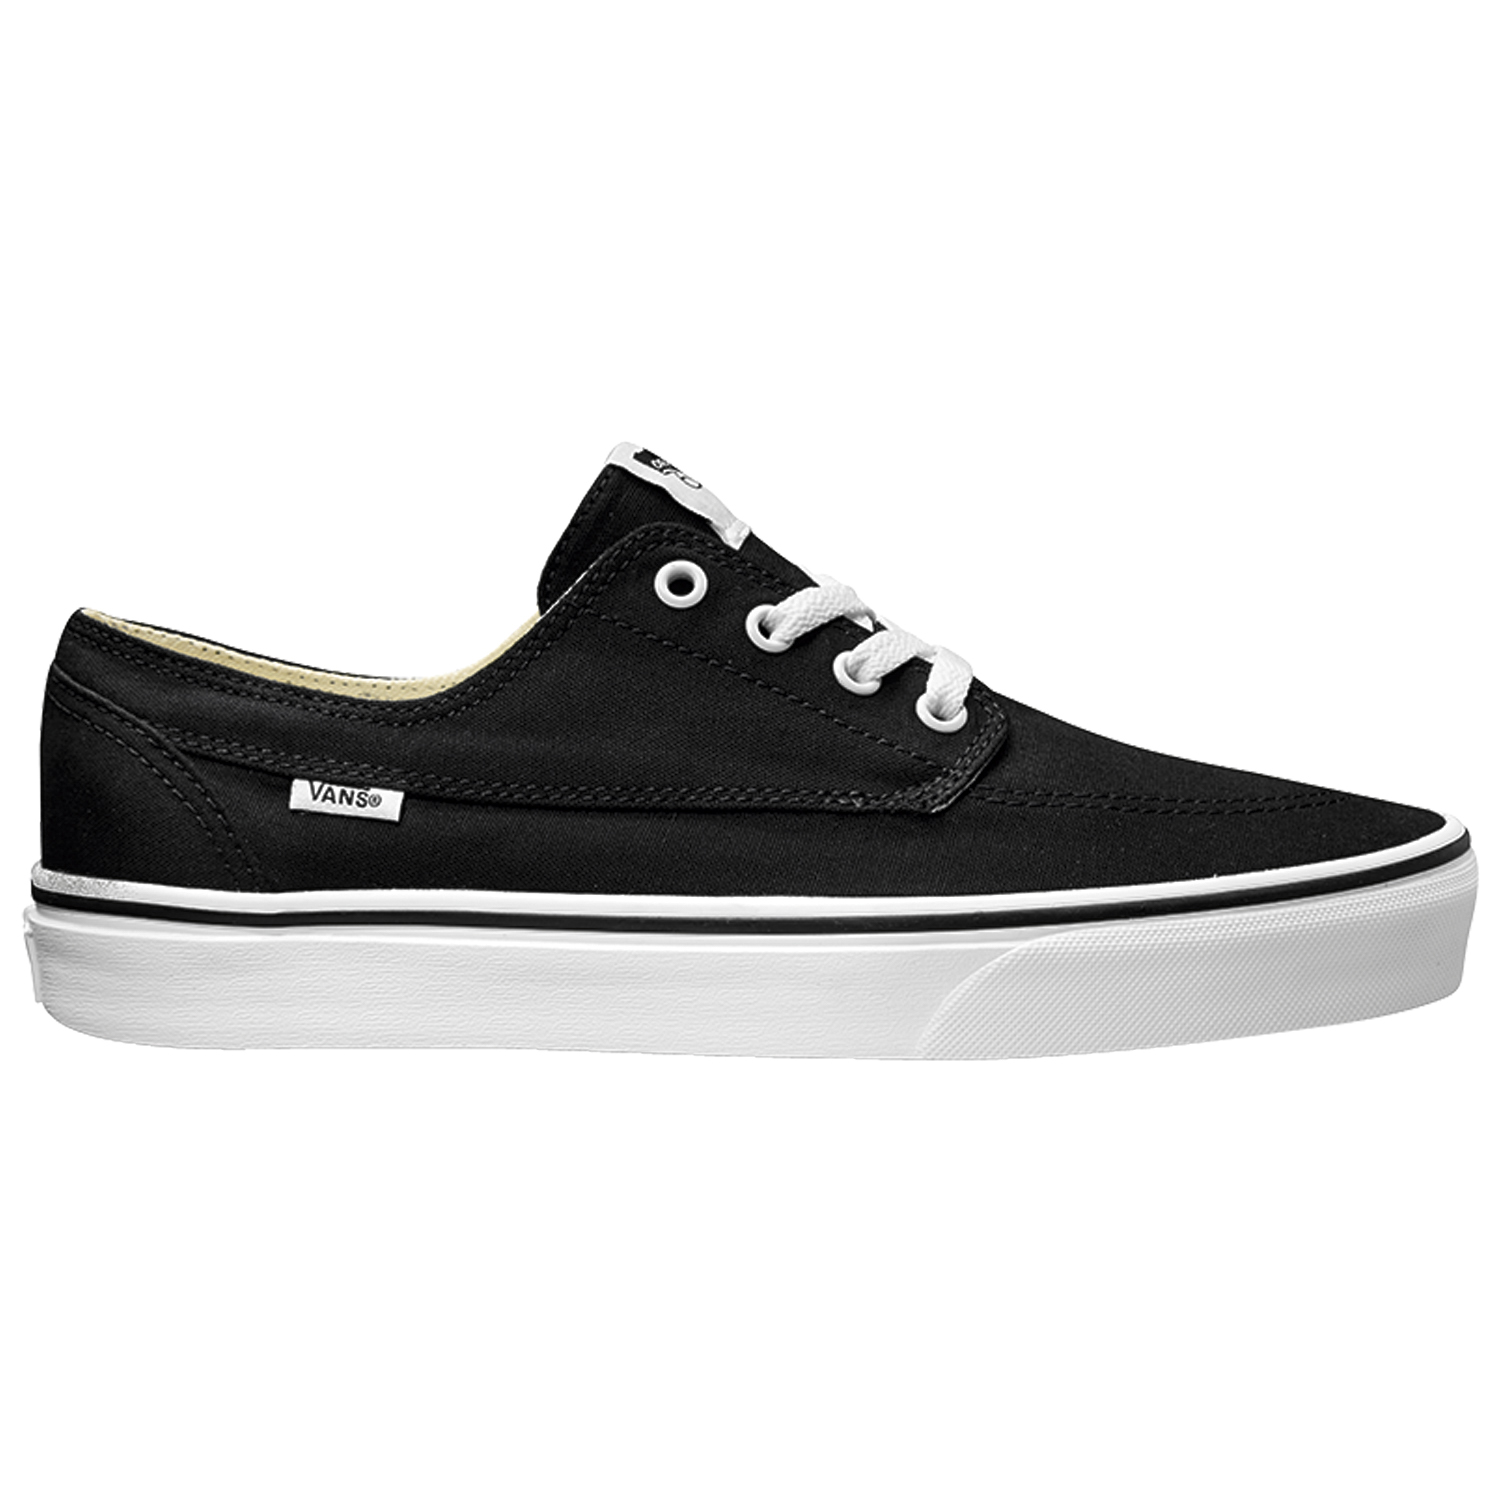 vans-brigata-black-true-white-99-90